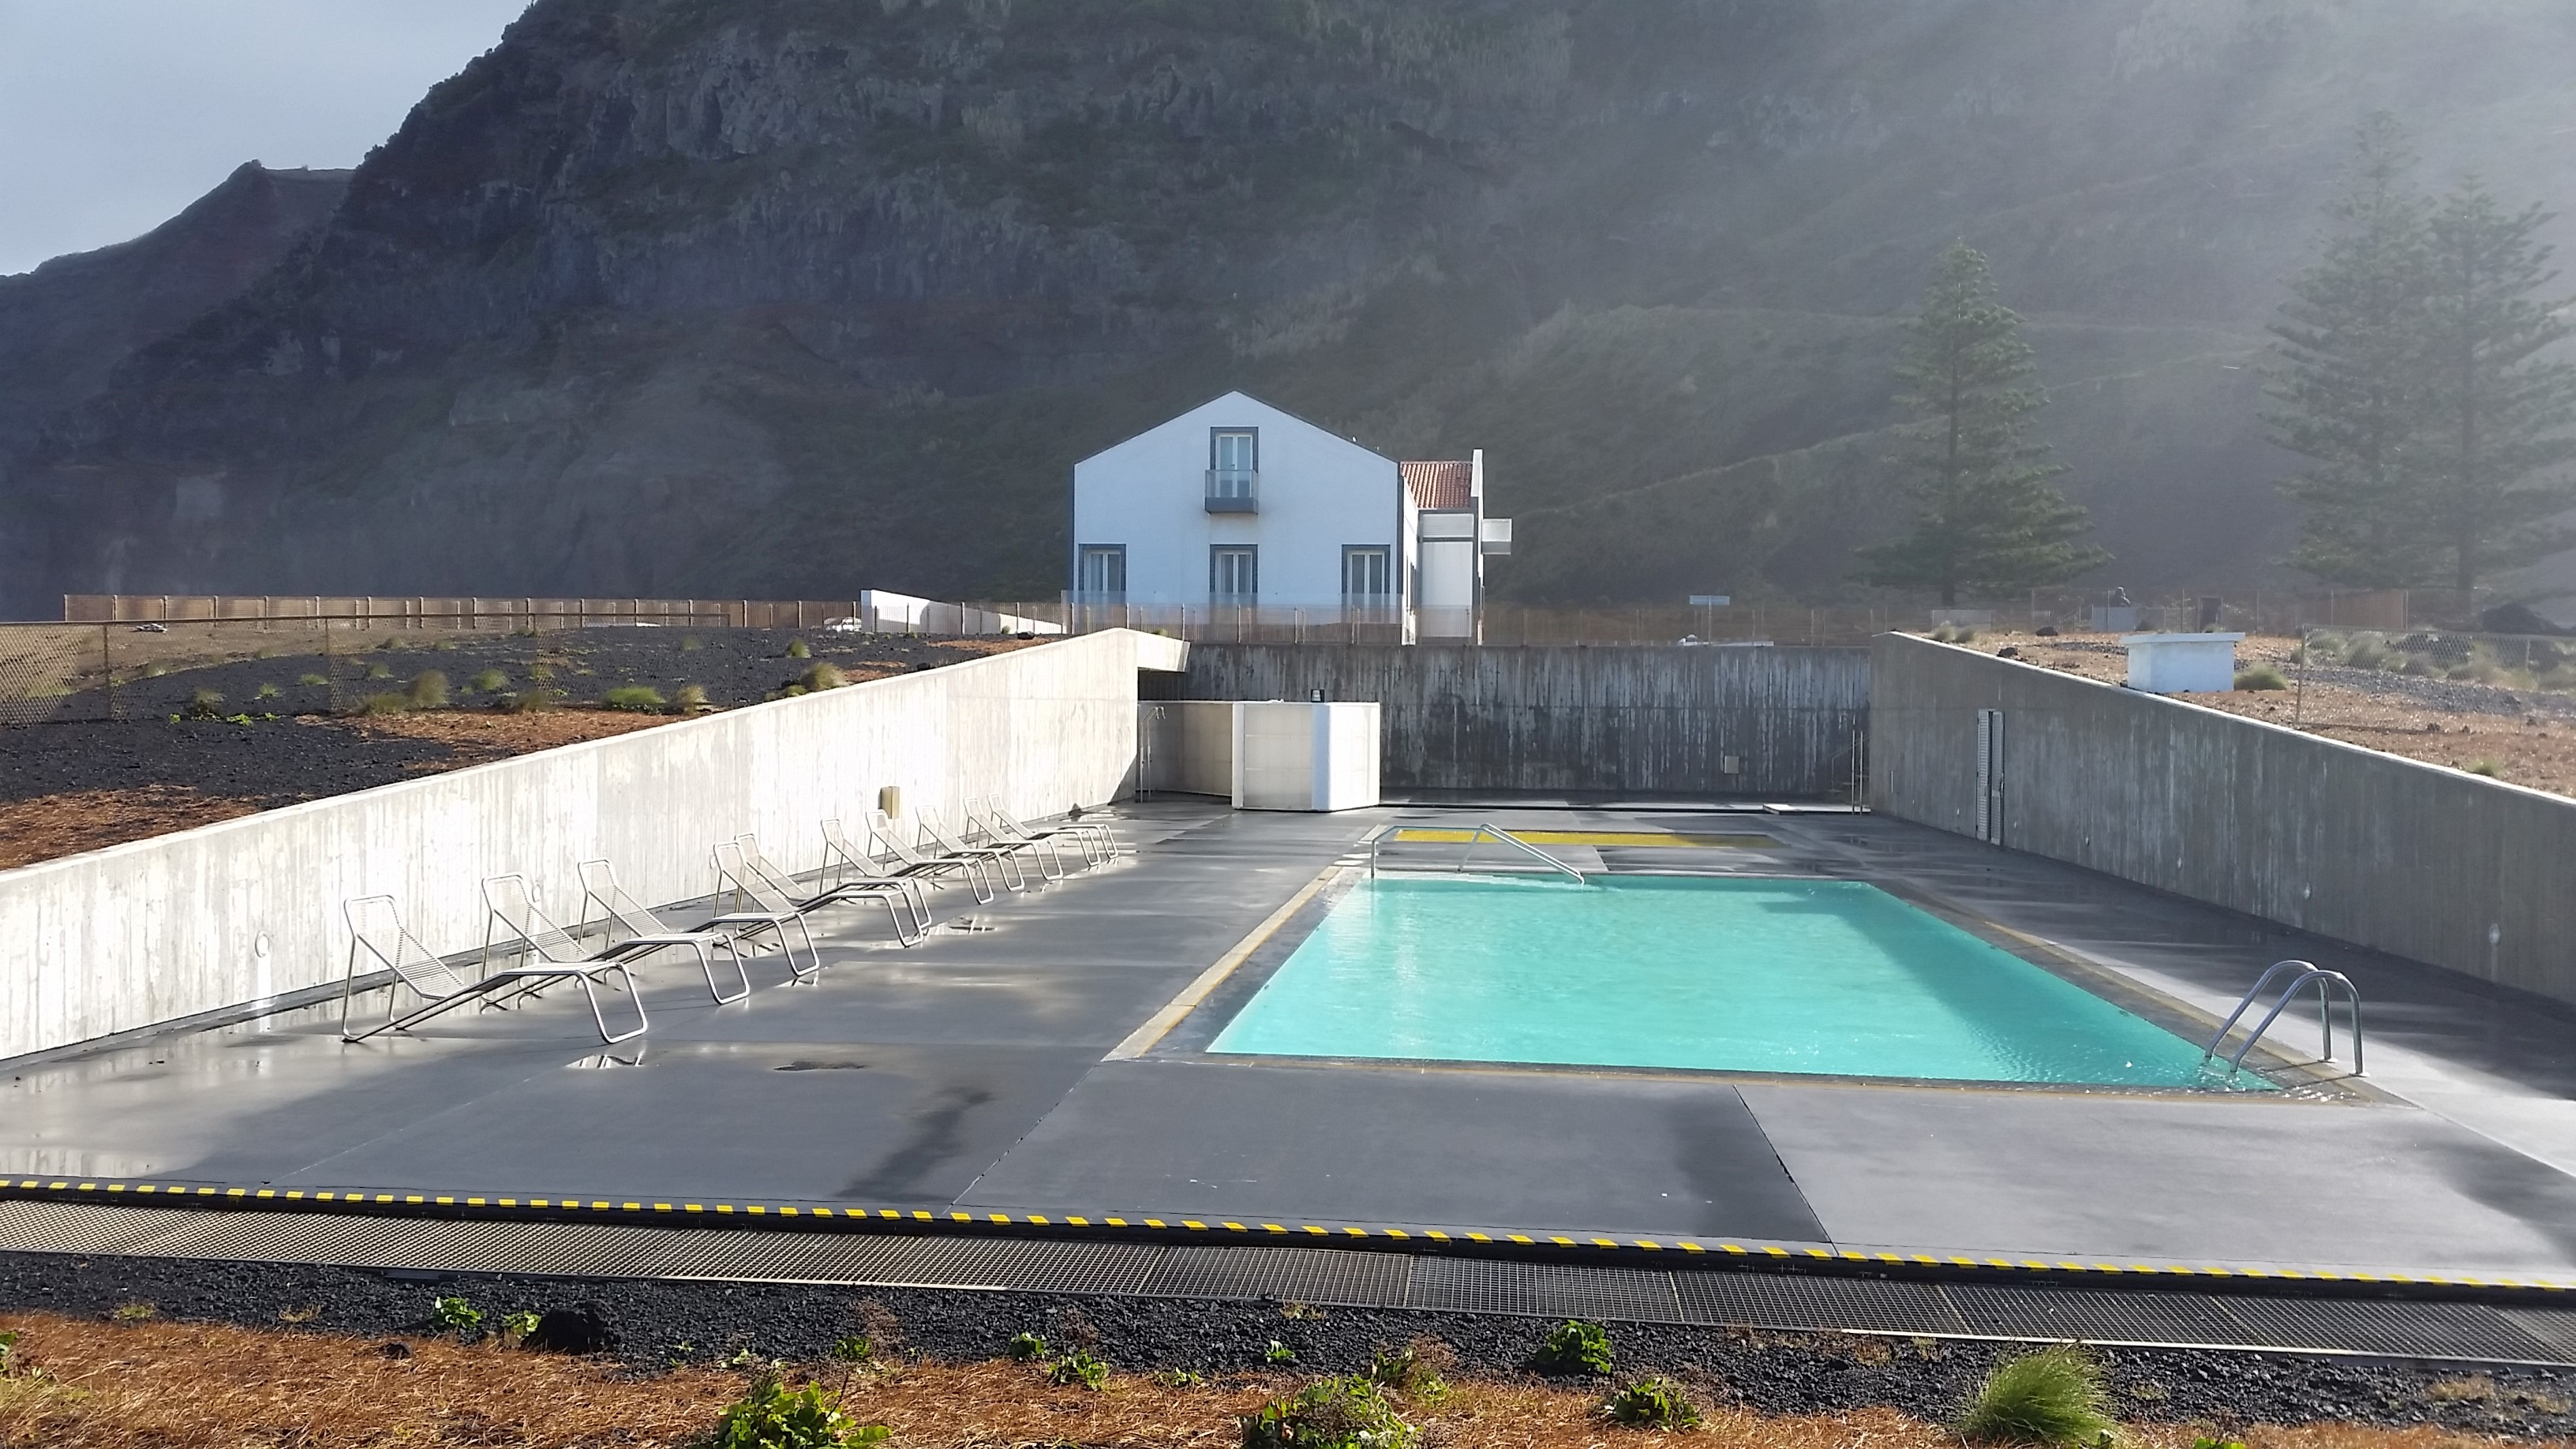 Ferraria Thermal building and pools